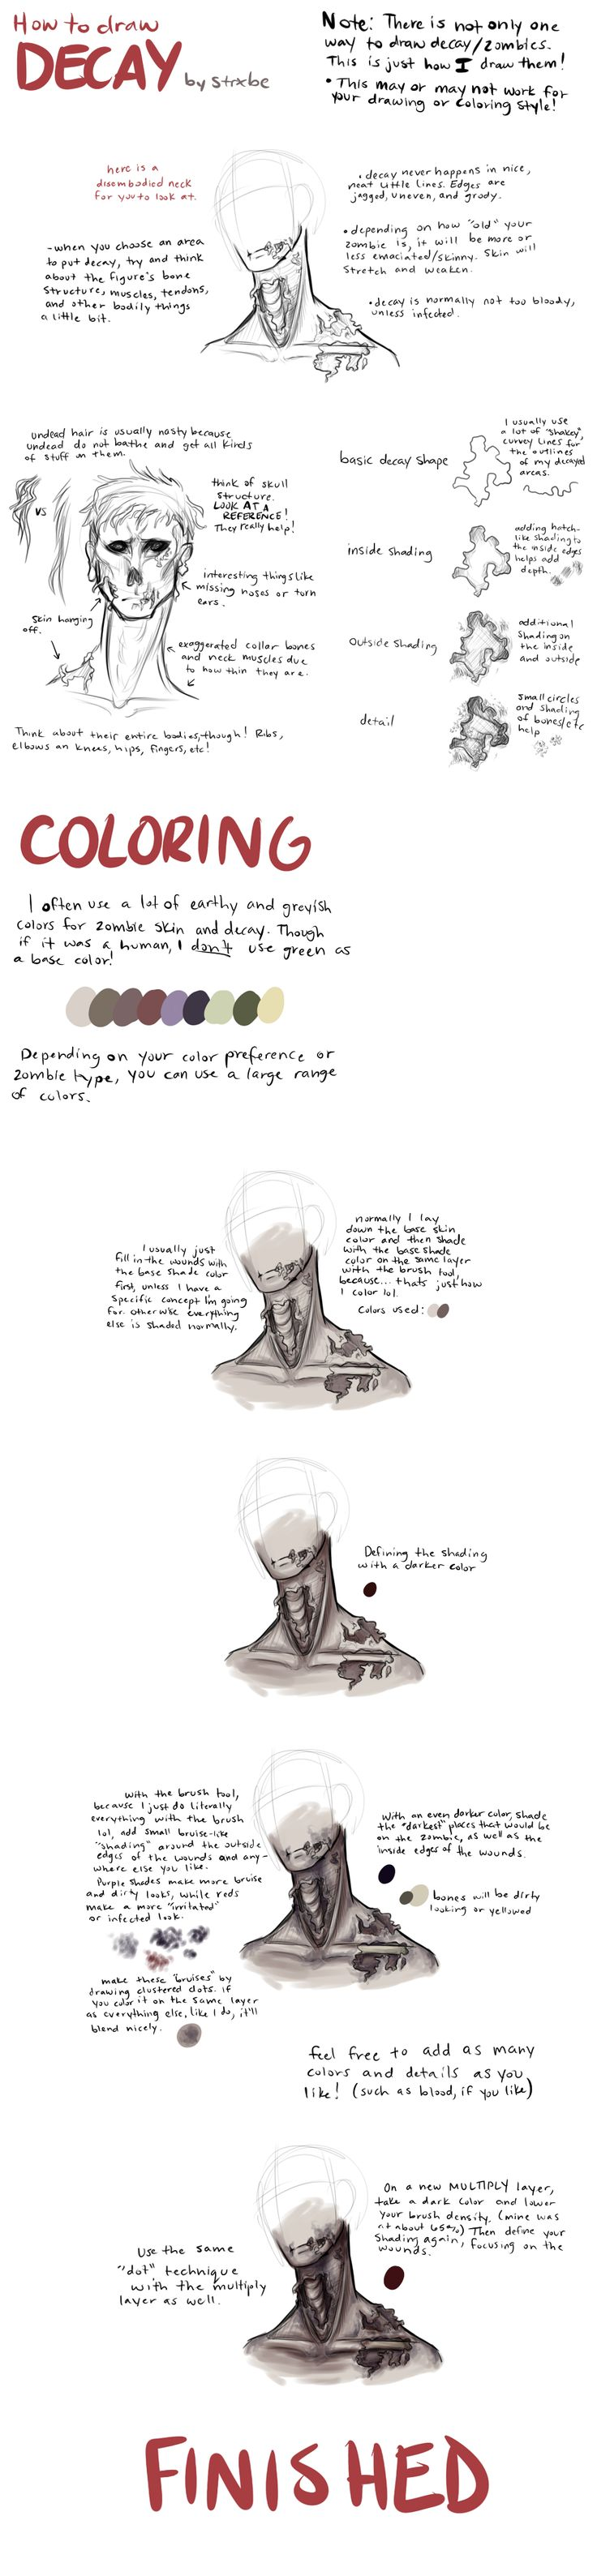 how to draw cuts and bruises